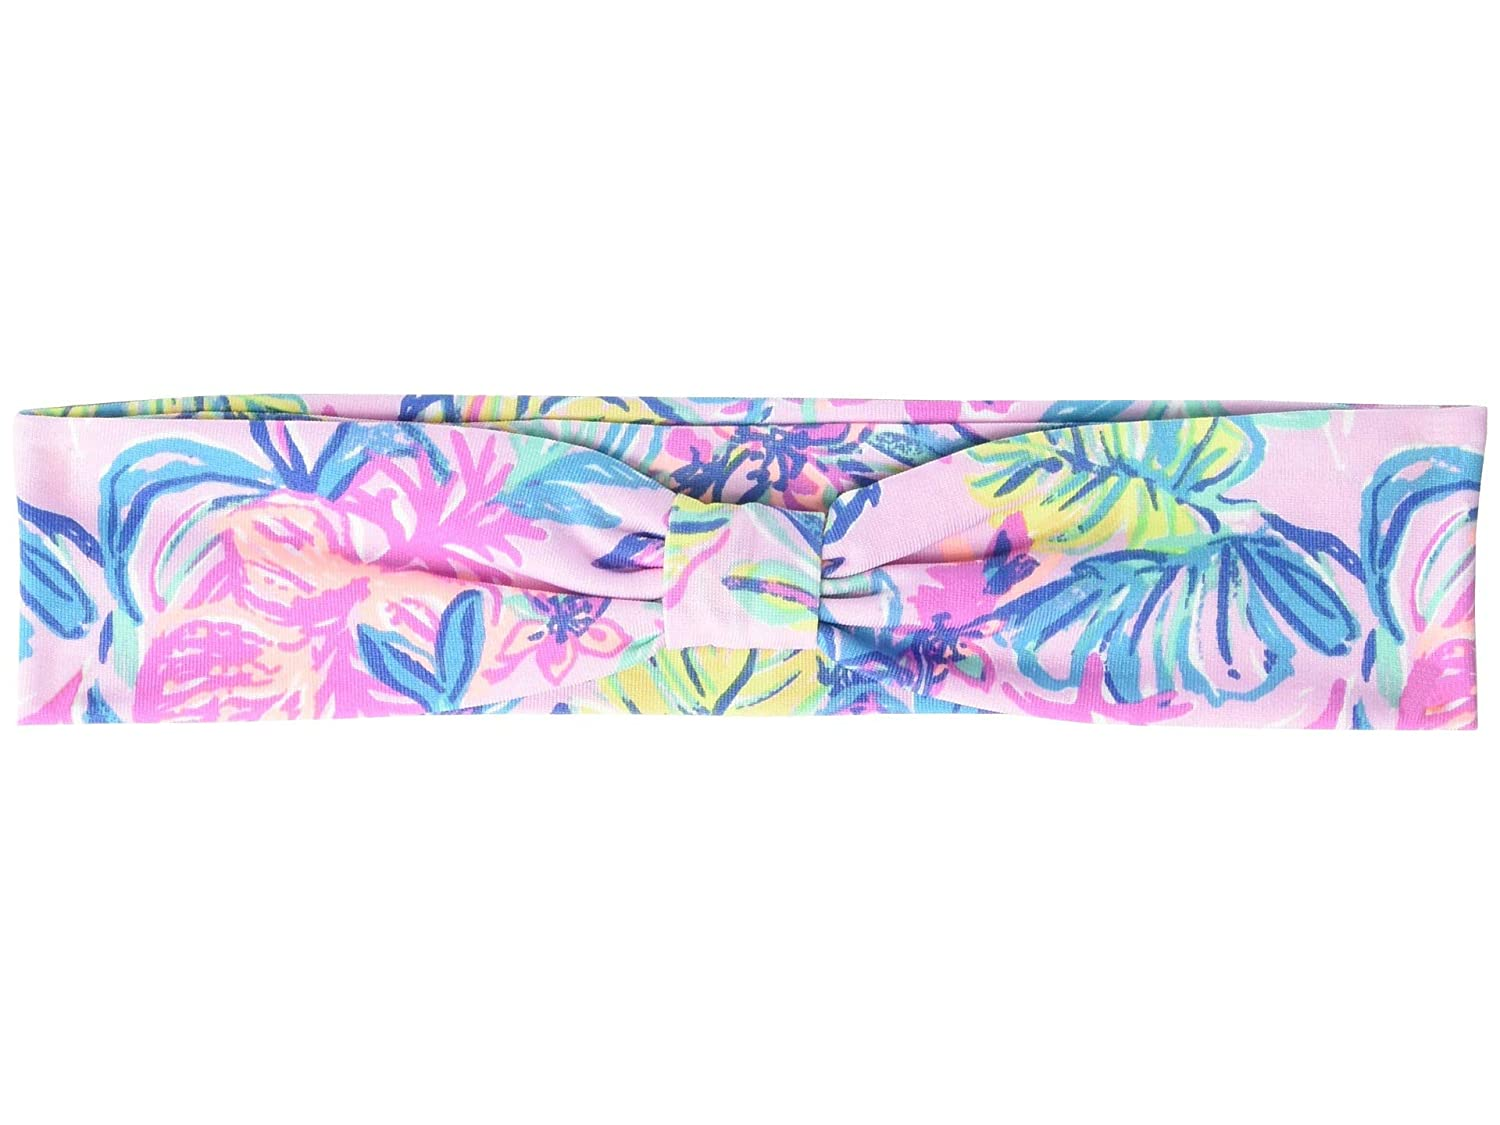 Lilly Pulitzer Pink/Blue Women's Cute Knotted Headband, Mermaid in the Shade